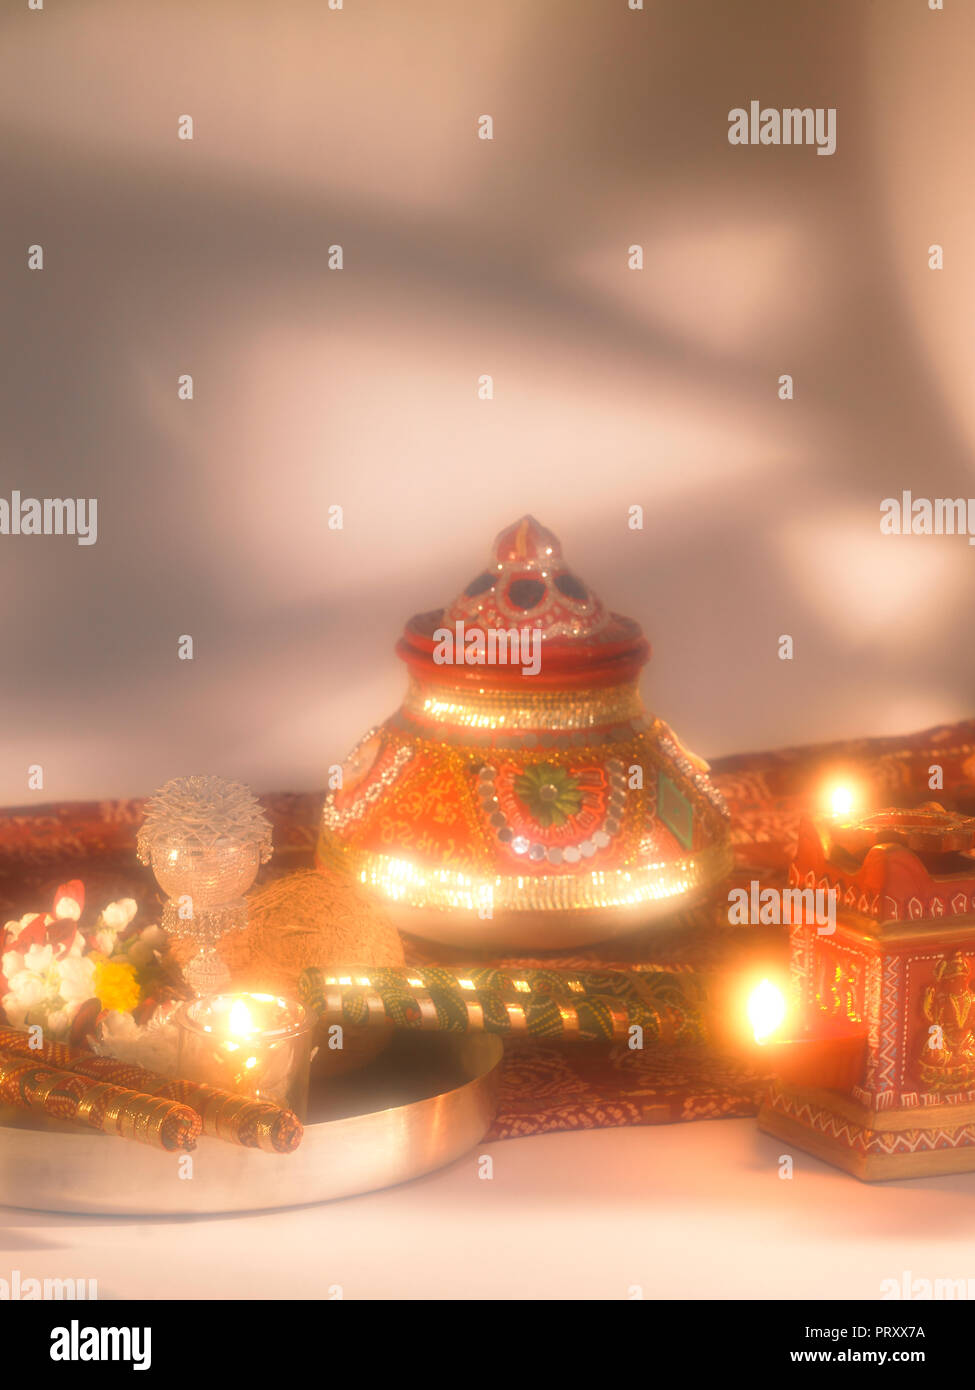 A STILL LIFE OF DASSERA FESTIVAL OBJECTS IN MUMBAI INDIA SHOWING A KALASH/POT, DIYAS, SWEETS, BANDHANI, SAREE, SILVER THALI WITH COCONUT, DIYA, FLOWER Stock Photo